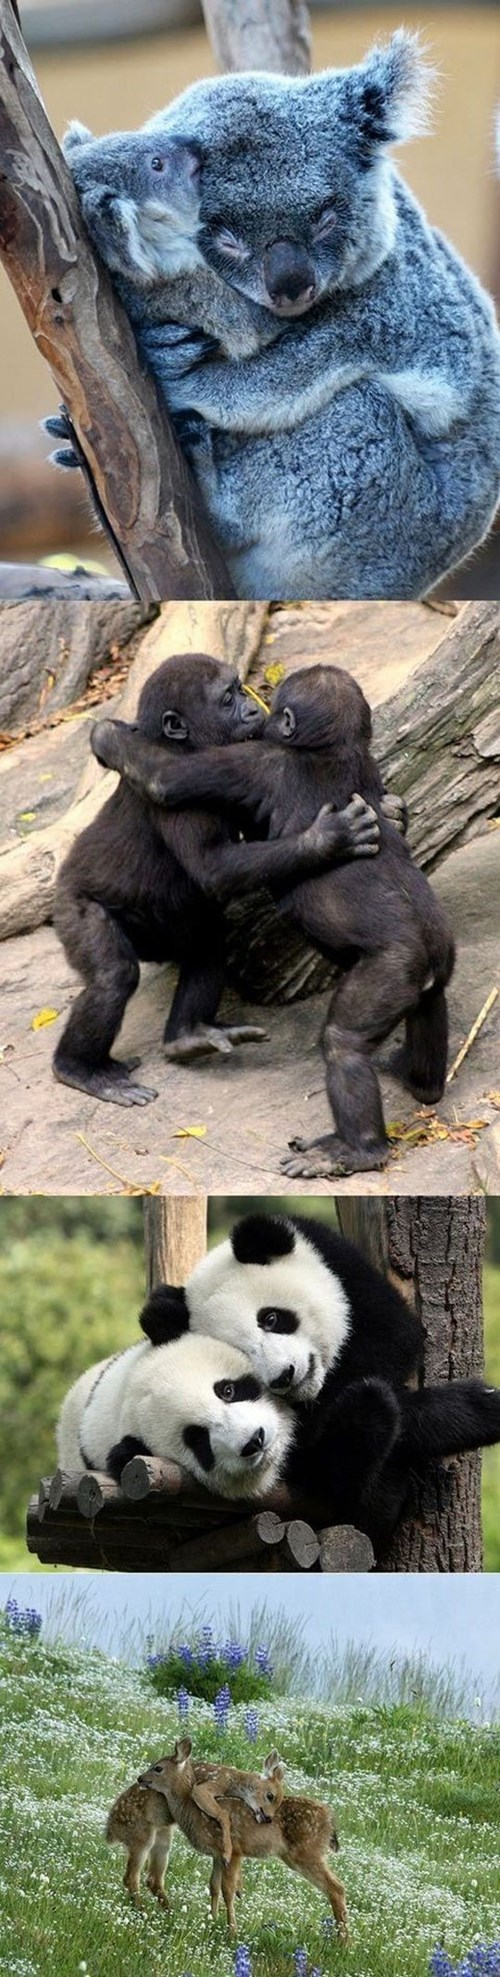 animals cute hugging squee - 8265277696